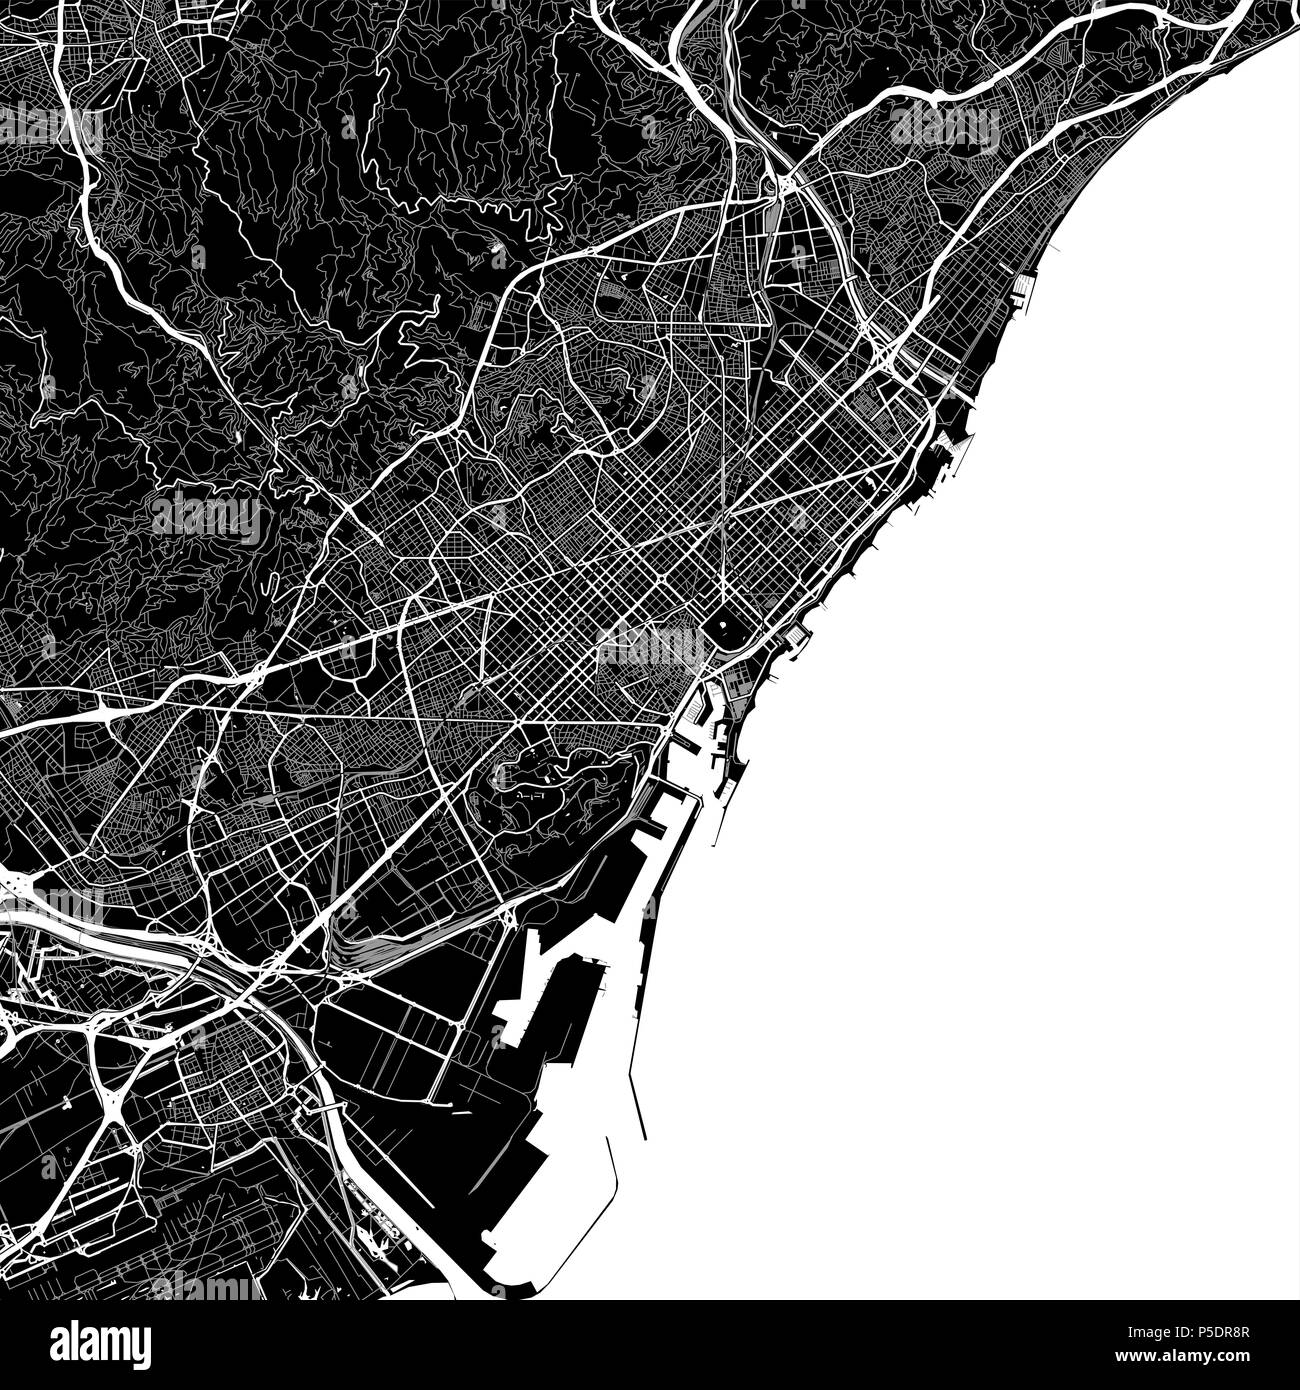 Area map of Barcelona, Spain. Dark background version for ... Map Of Barcelona Area on areas of copenhagen map, areas of boston map, areas of athens map, areas of seattle map, areas of greece map, areas of new york map, areas of london map, areas of abu dhabi map, areas of milan map, areas of spain map, areas of atlanta map, areas of houston map, areas of cadiz map, areas of new orleans map, areas of tampa map, areas of rome map, areas of berlin map, areas of los angeles map, areas of bangkok map, areas of chicago map,